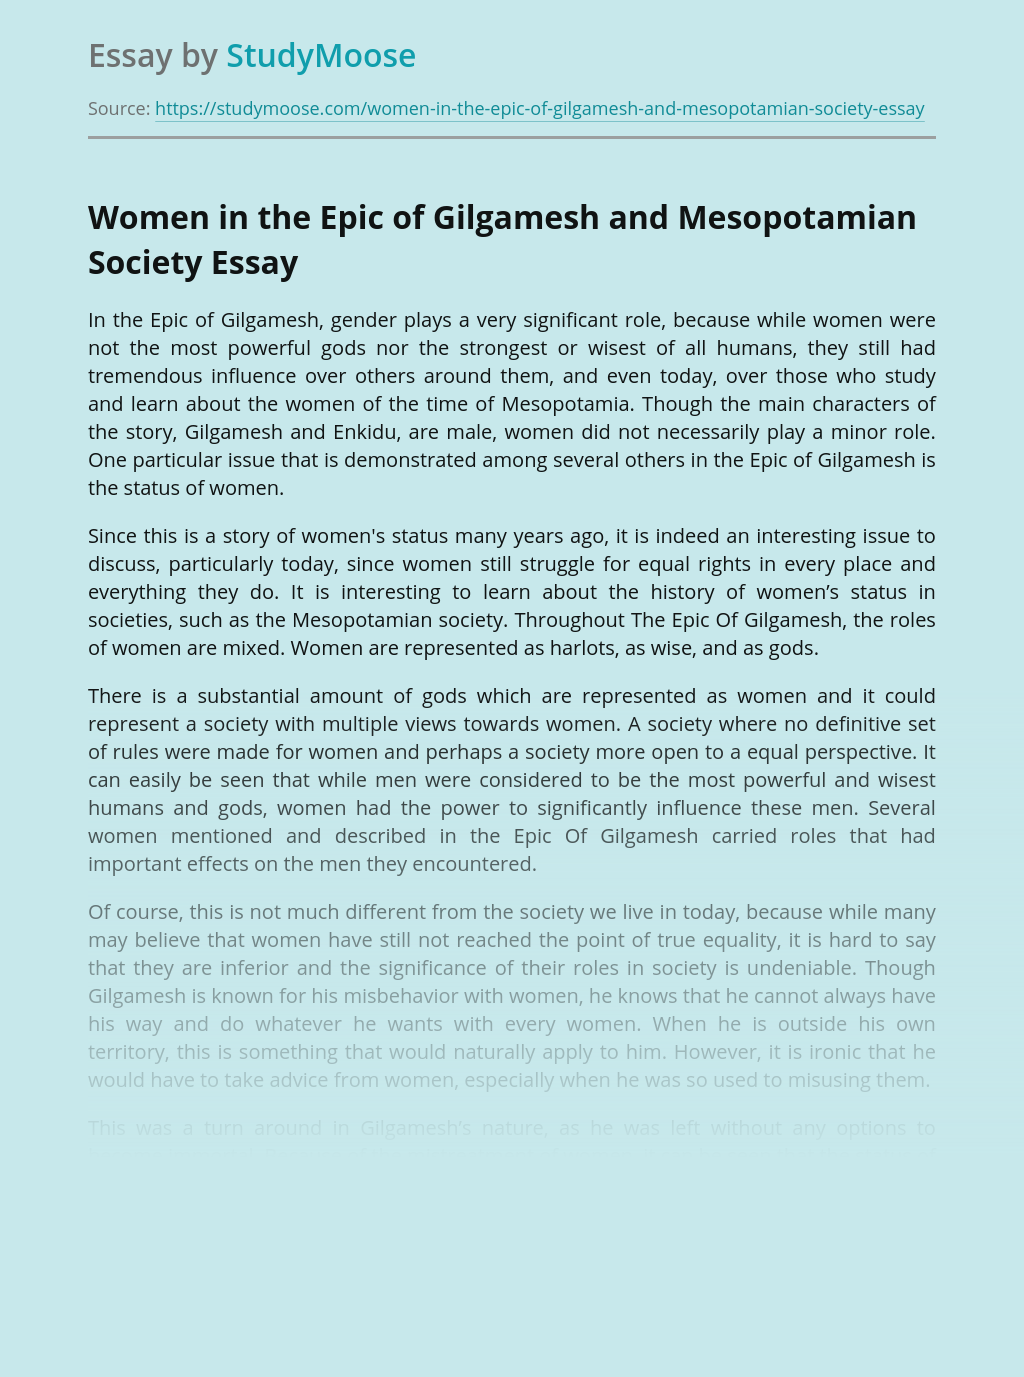 Women in the Epic of Gilgamesh and Mesopotamian Society